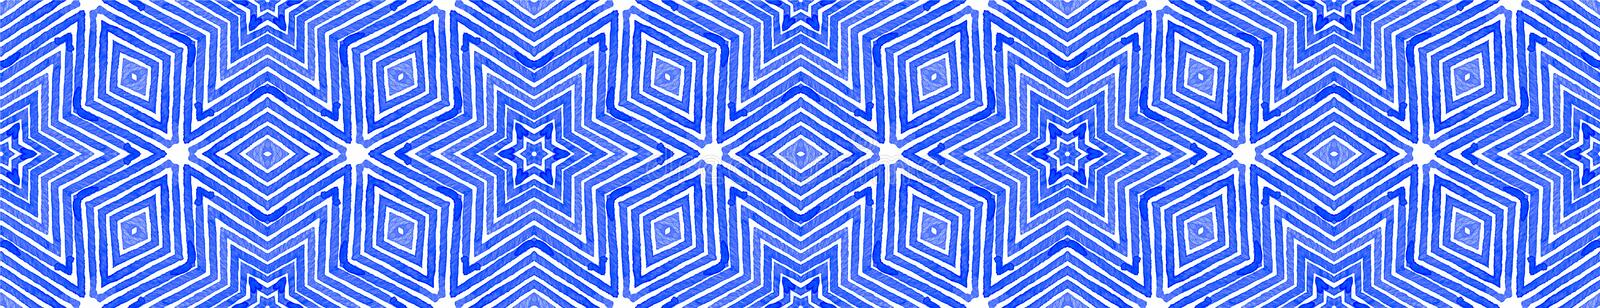 Blue Seamless Border Scroll. Geometric Watercolor royalty free stock photography